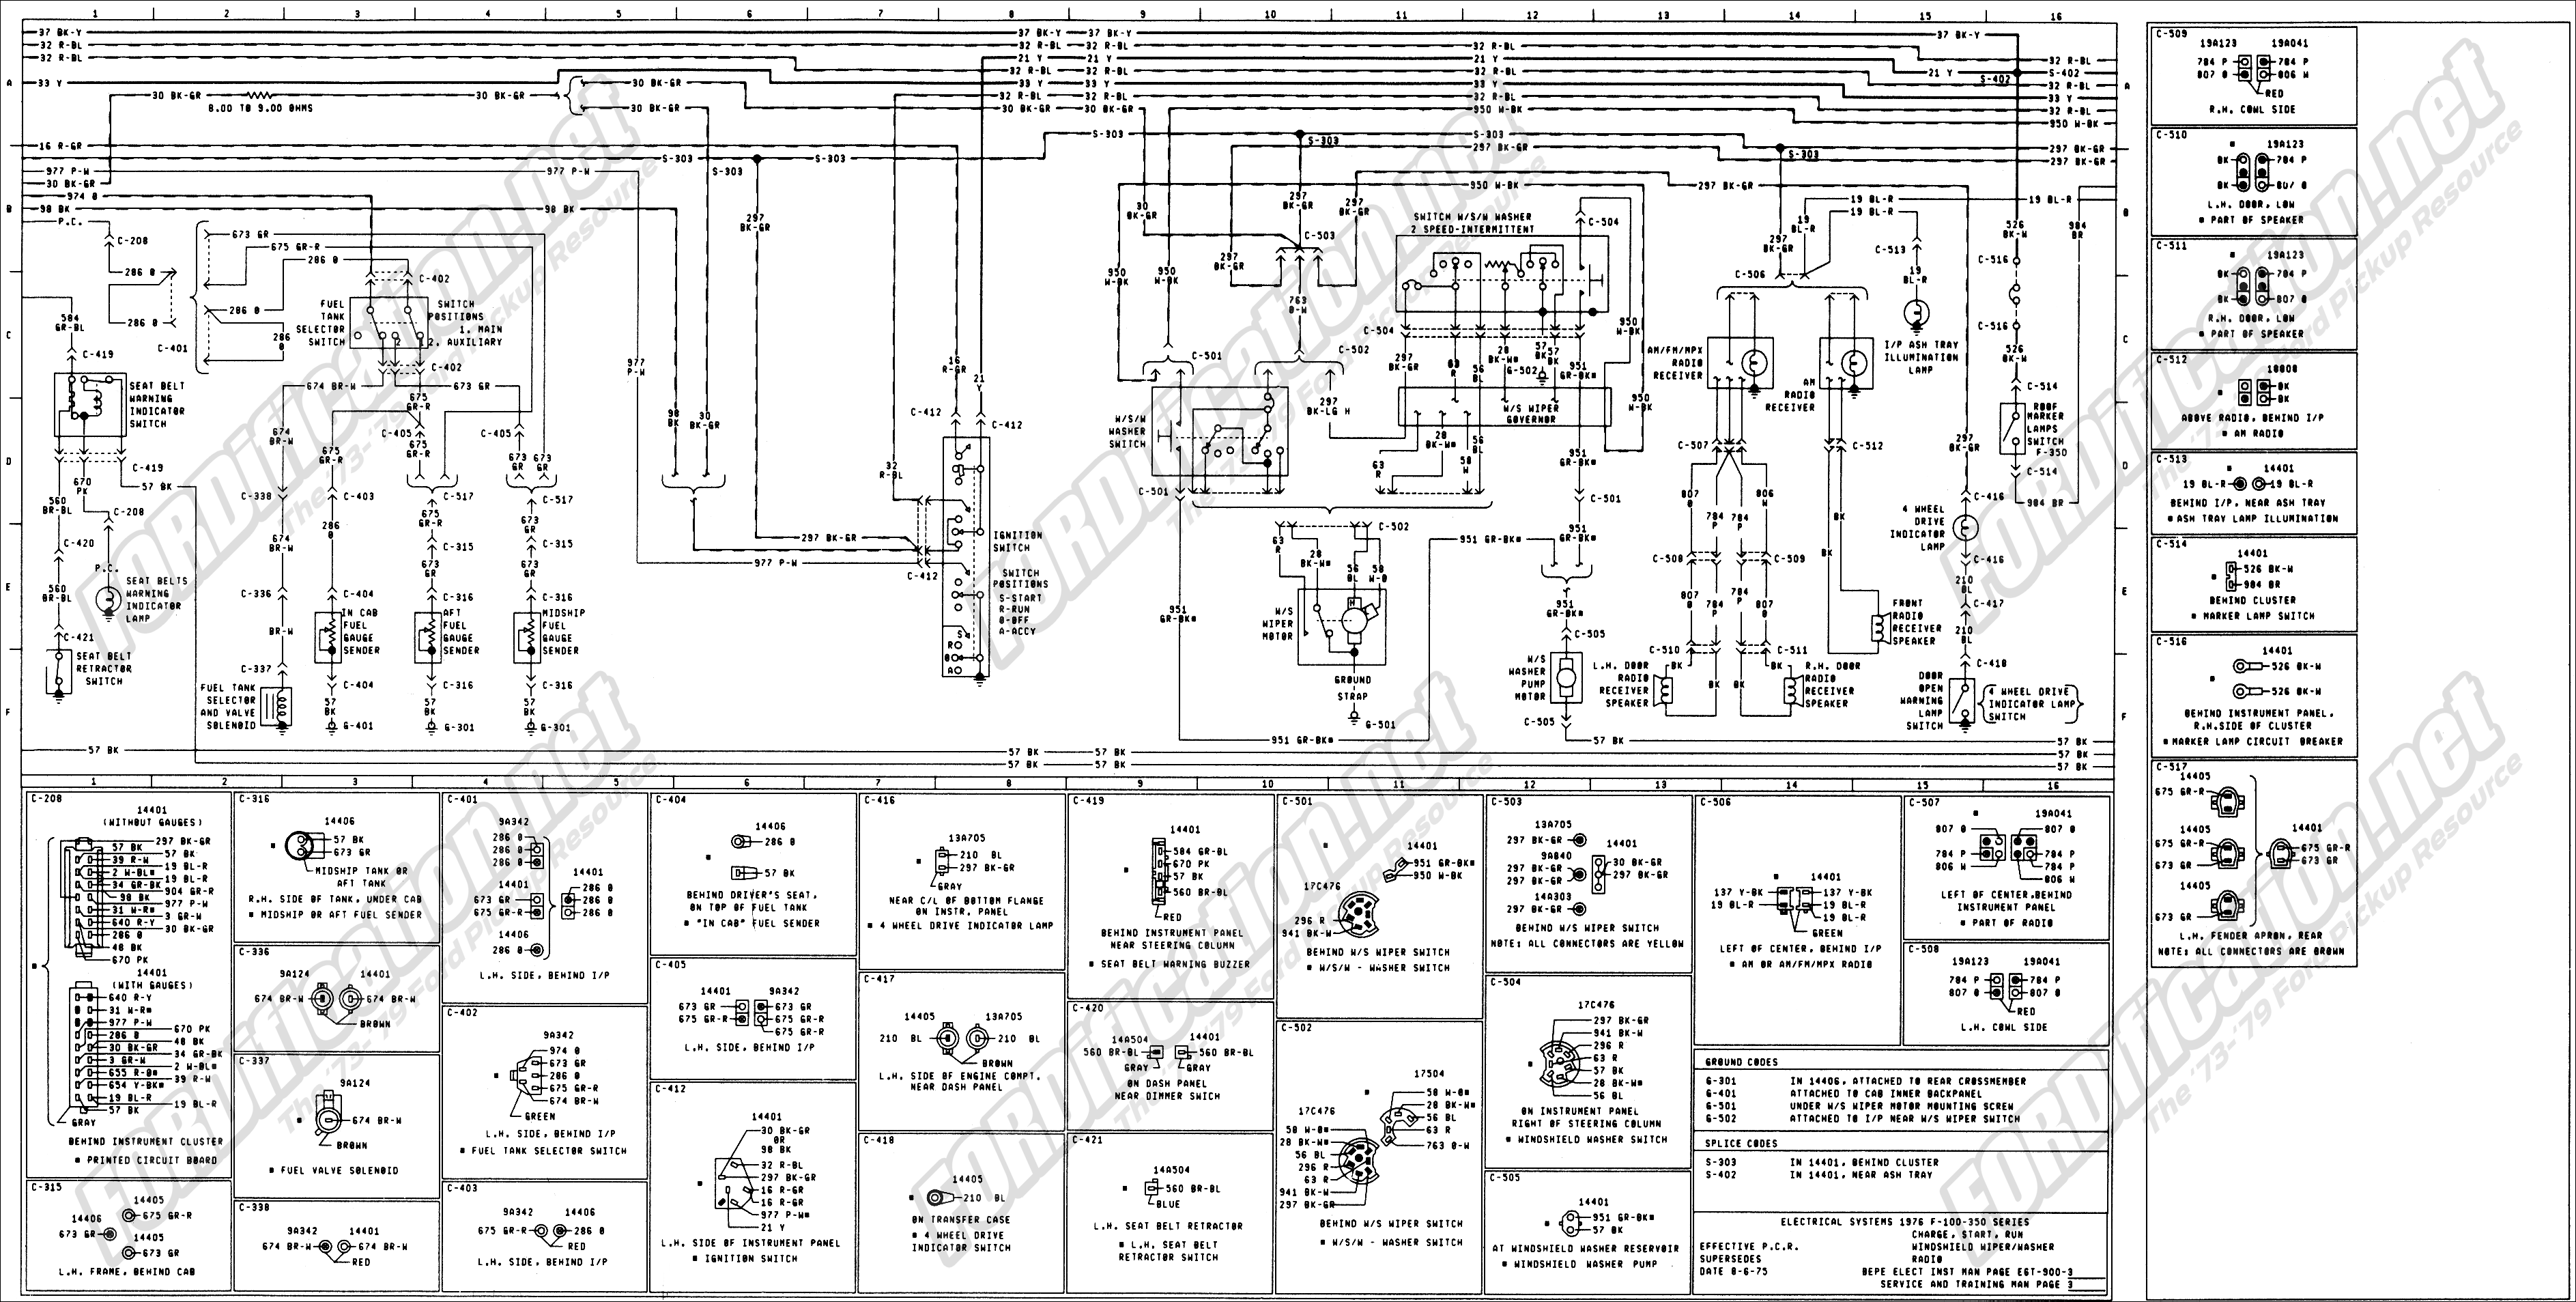 Fuse Box Diagram For 2002 Ford F 350 Wiring Library 2012 Nissan Maxima F250 Schematics F350